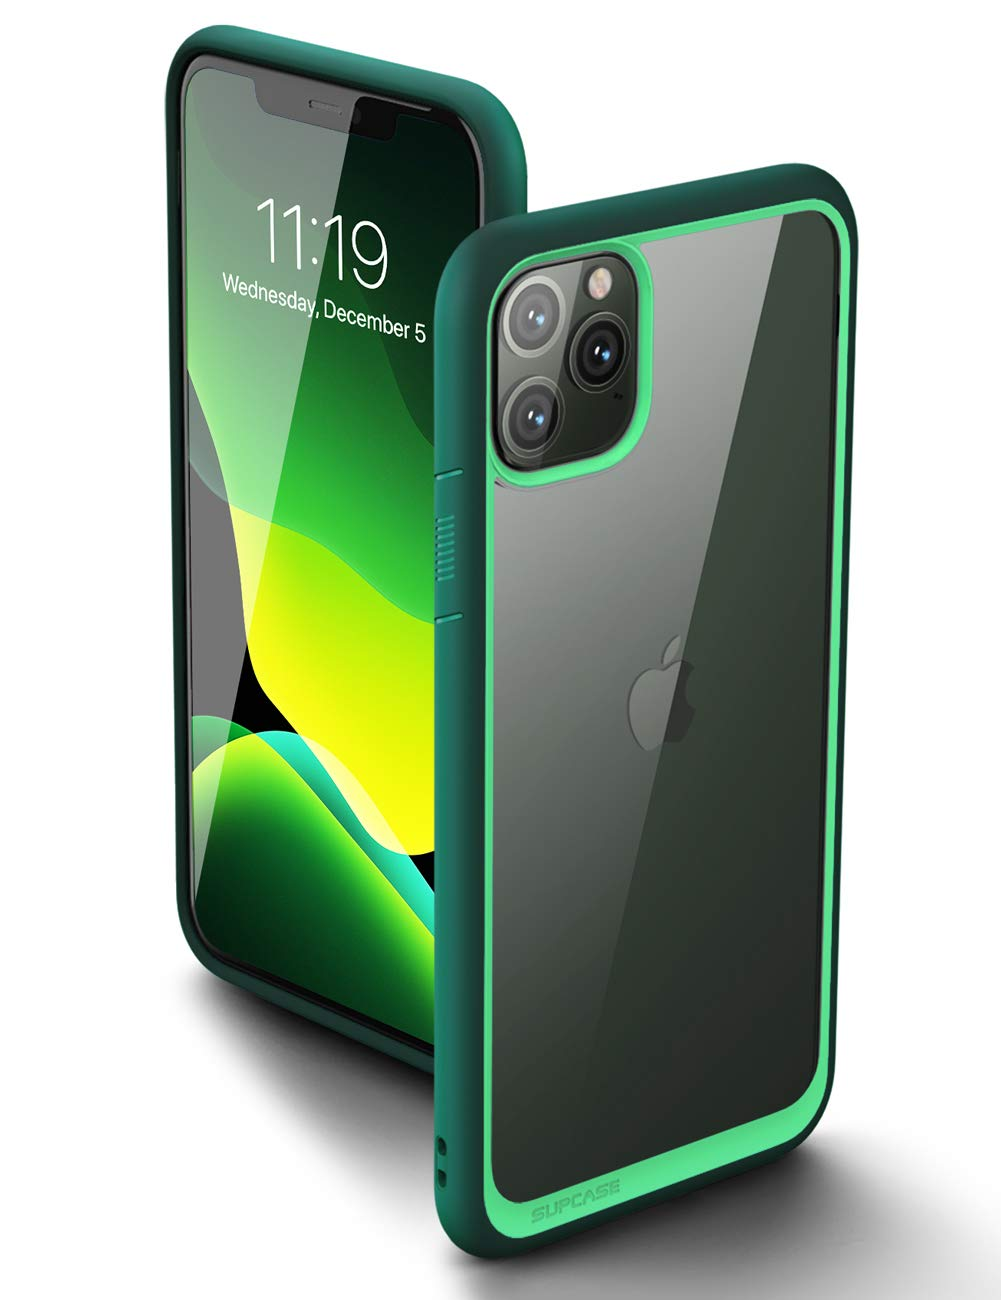 SupCase Unicorn Beetle Style Series Case Designed for iPhone 11 Pro Max 6.5 Inch (2019 Release), Premium Hybrid Protective Clear Case (DarkGreen)